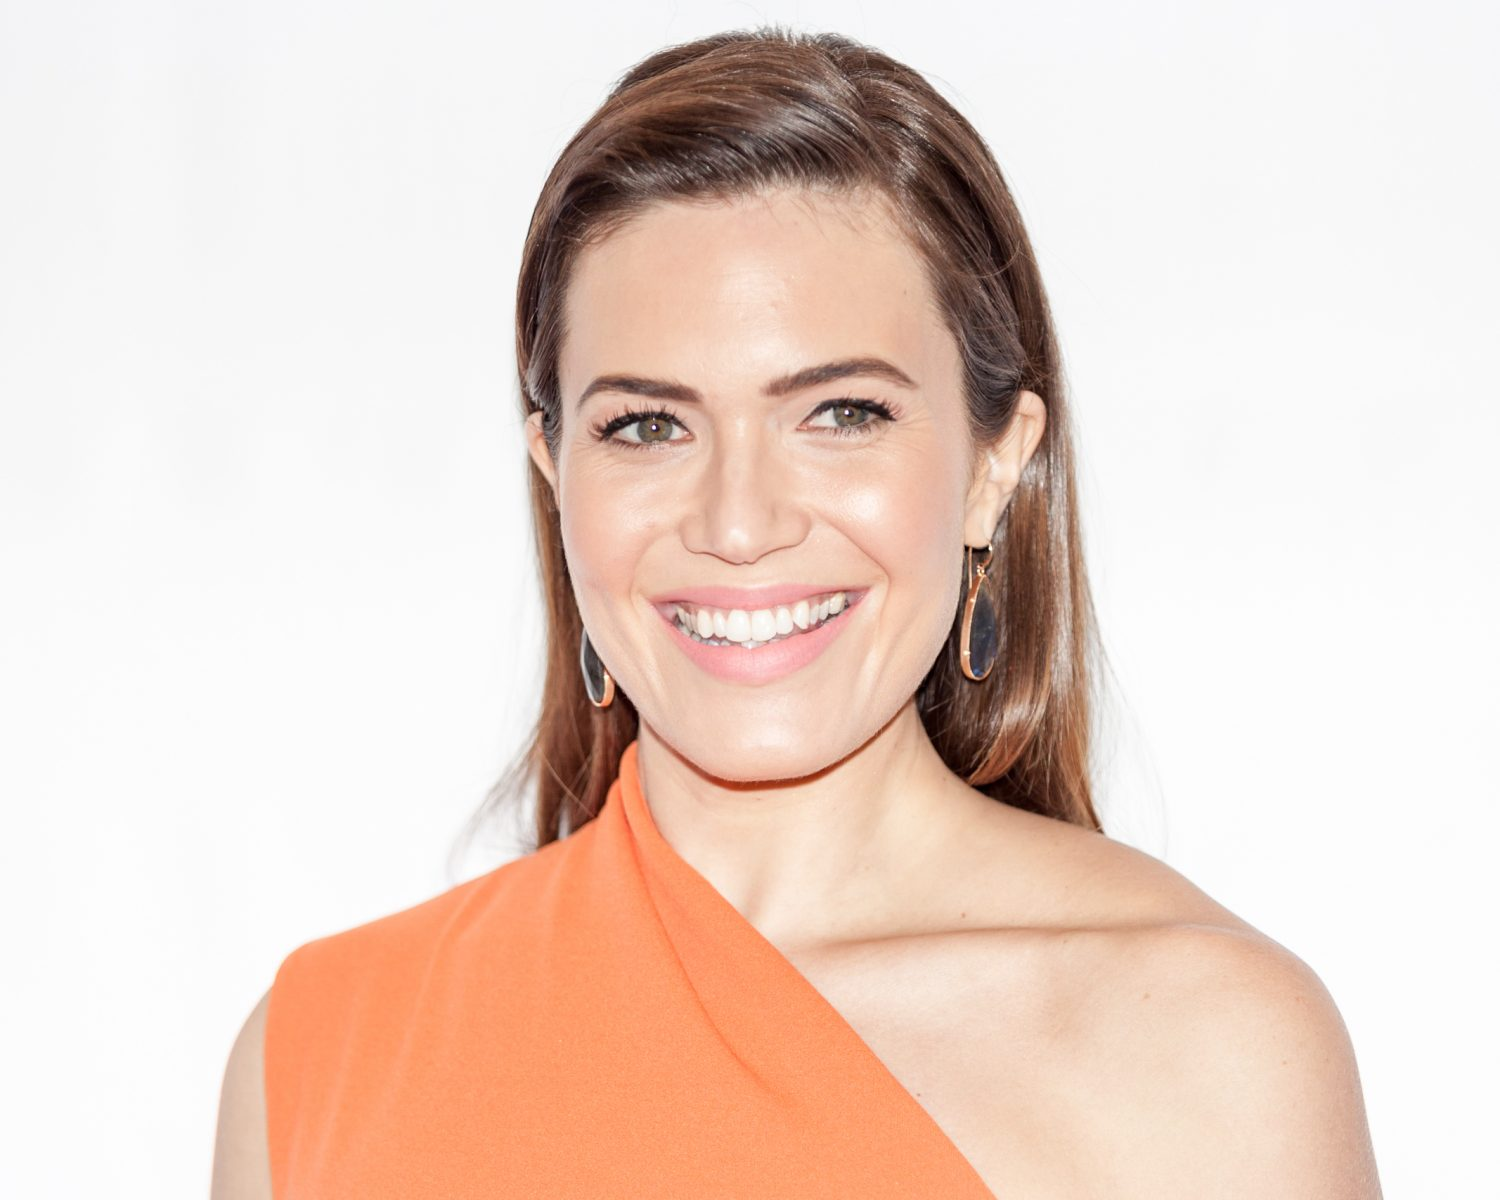 Mandy Moore Is Ready To Get Married To Boyfriend Taylor